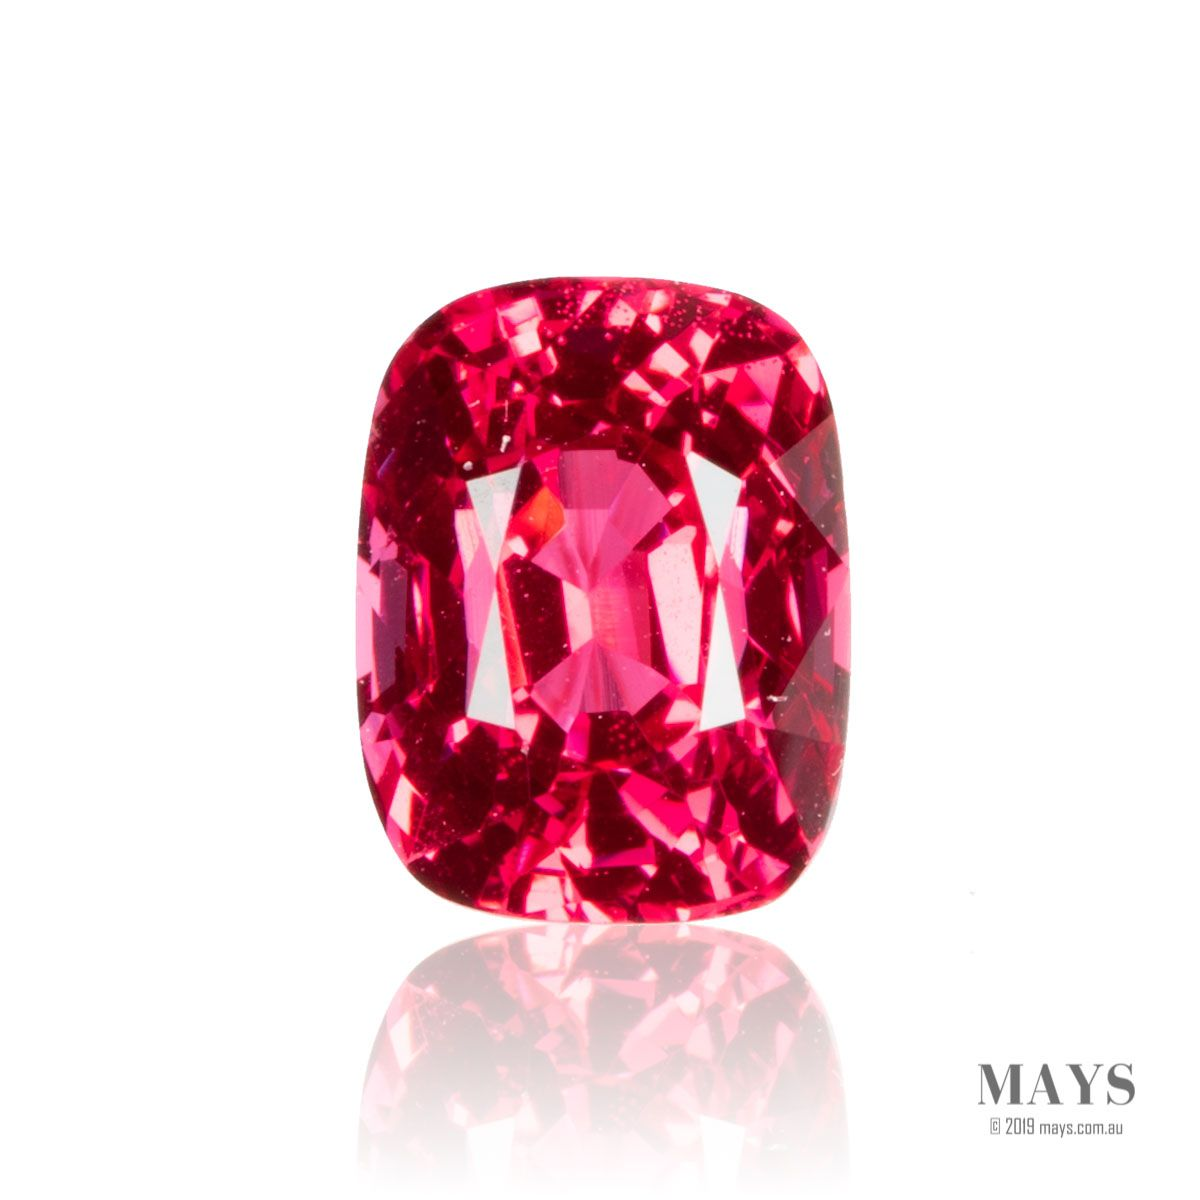 Buy Spinel Gemstone | Buying Guide: Quality, Price, Colours